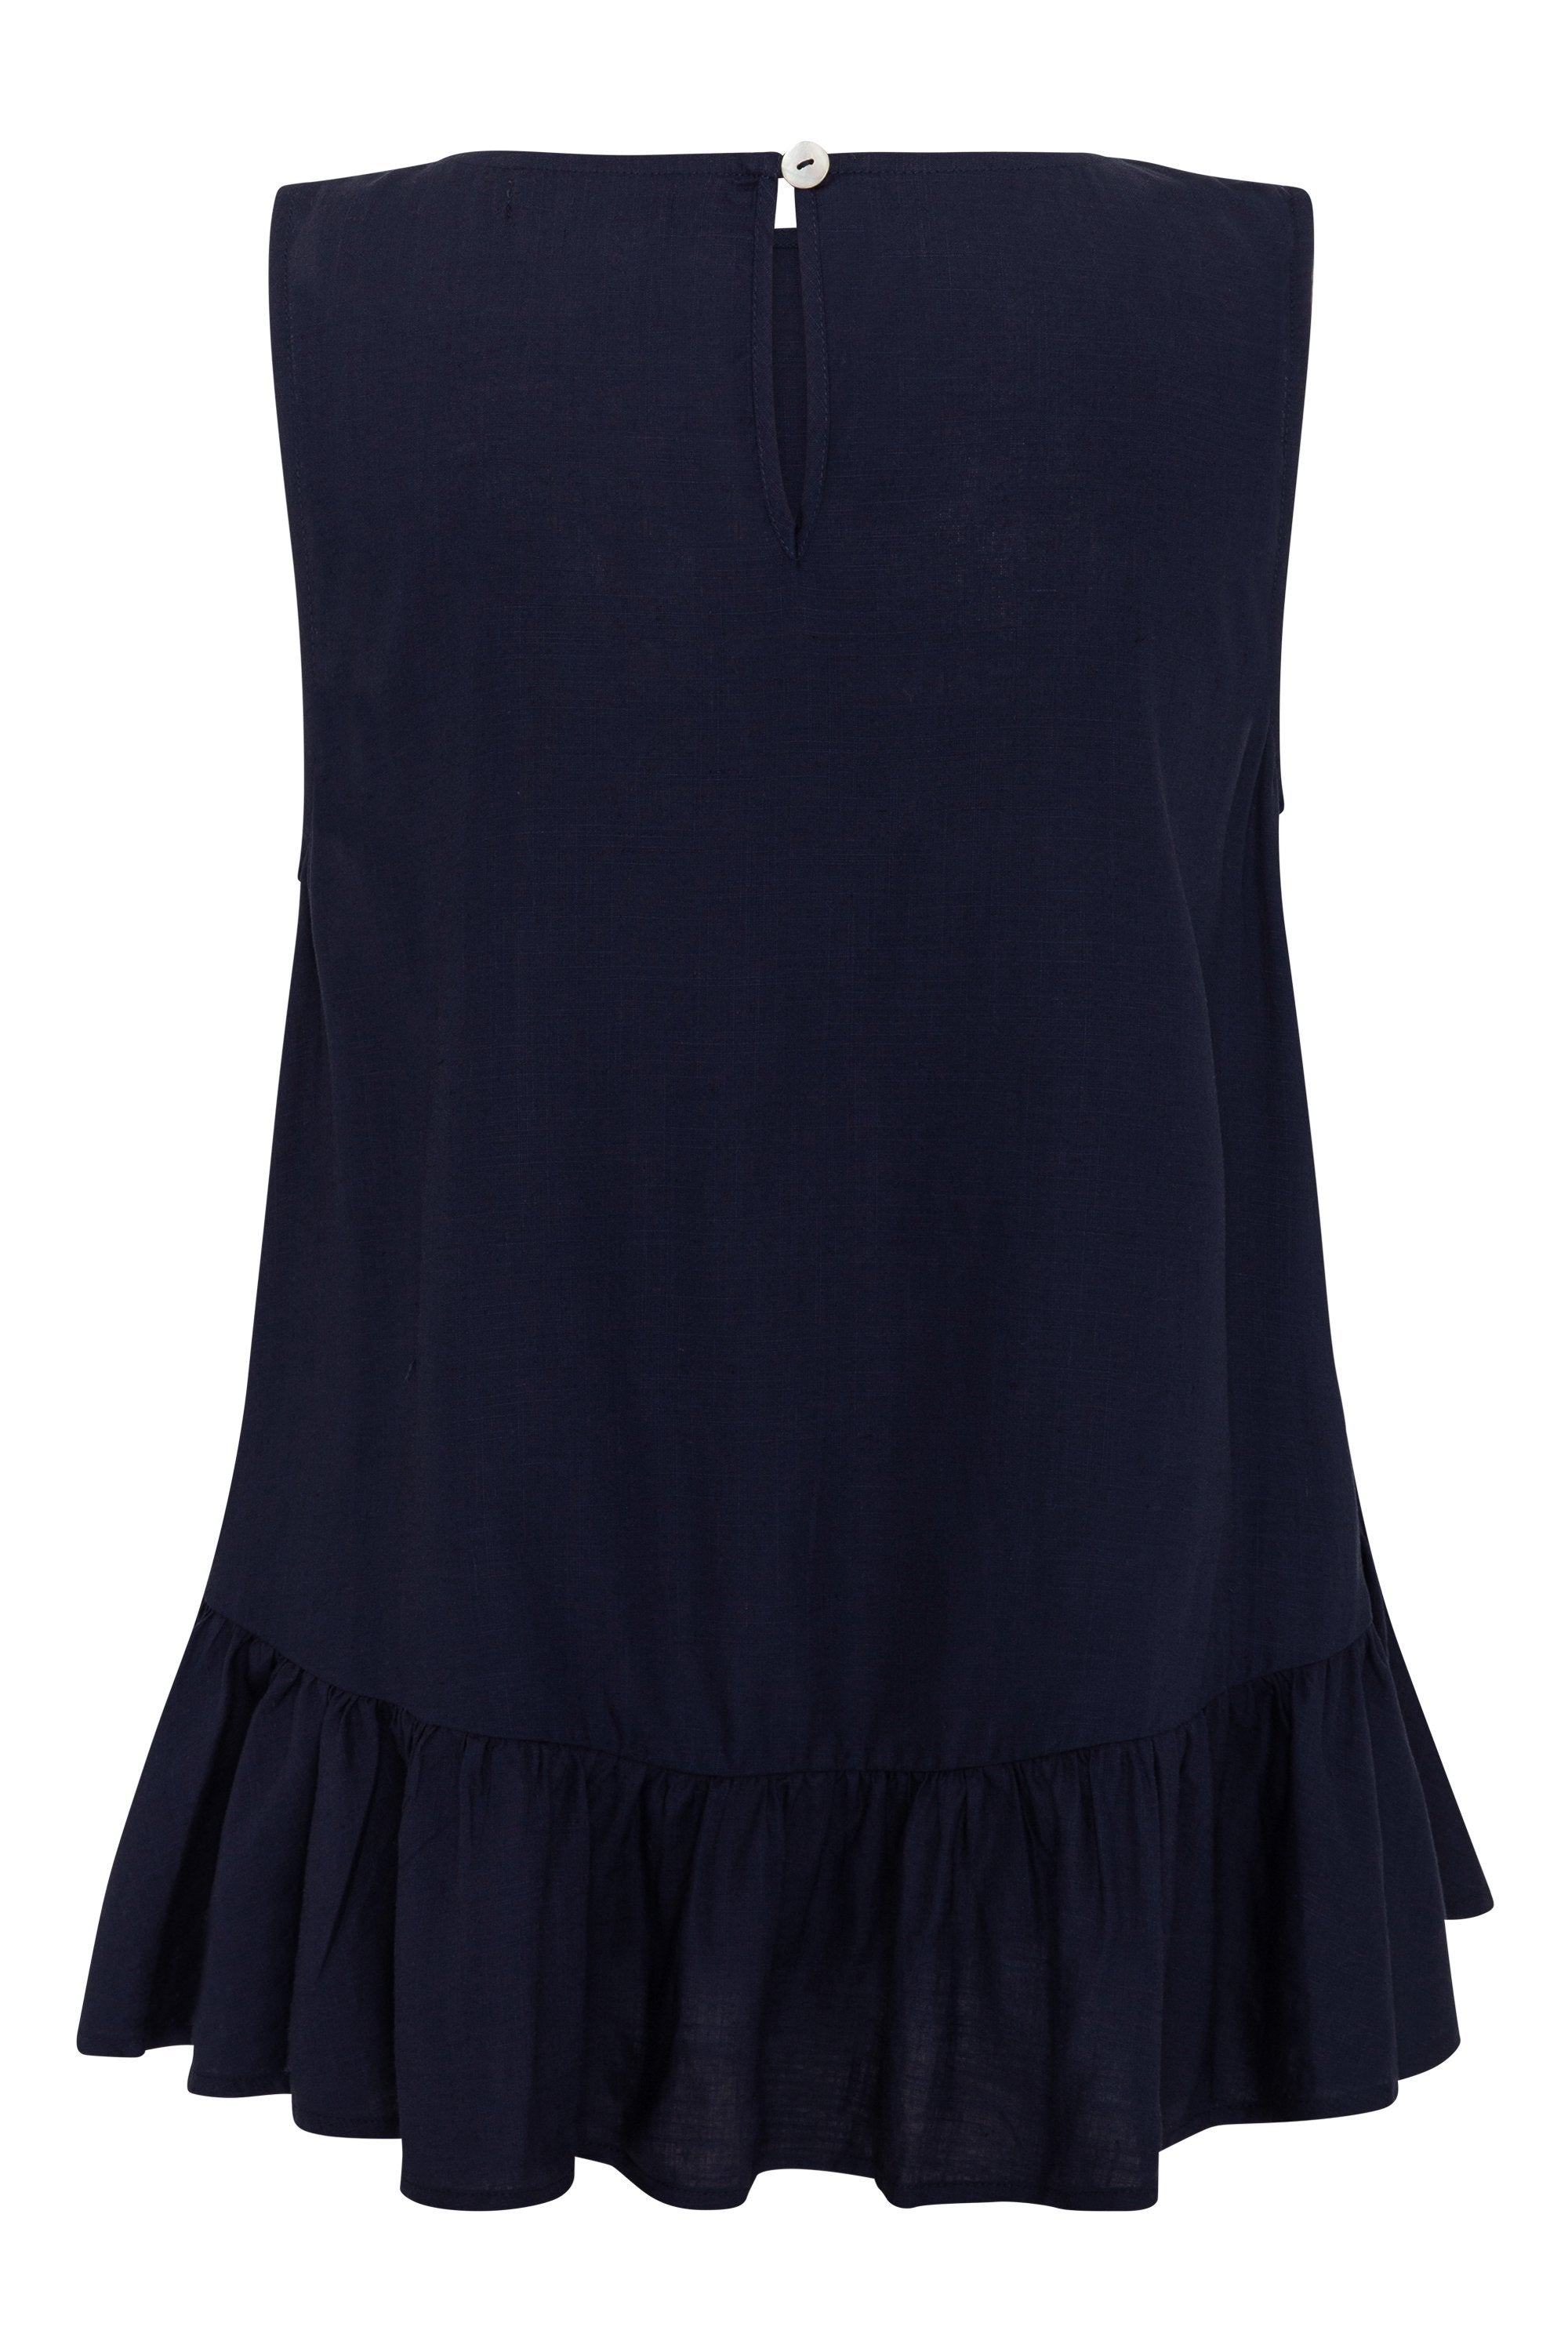 Celeste Top In Navy